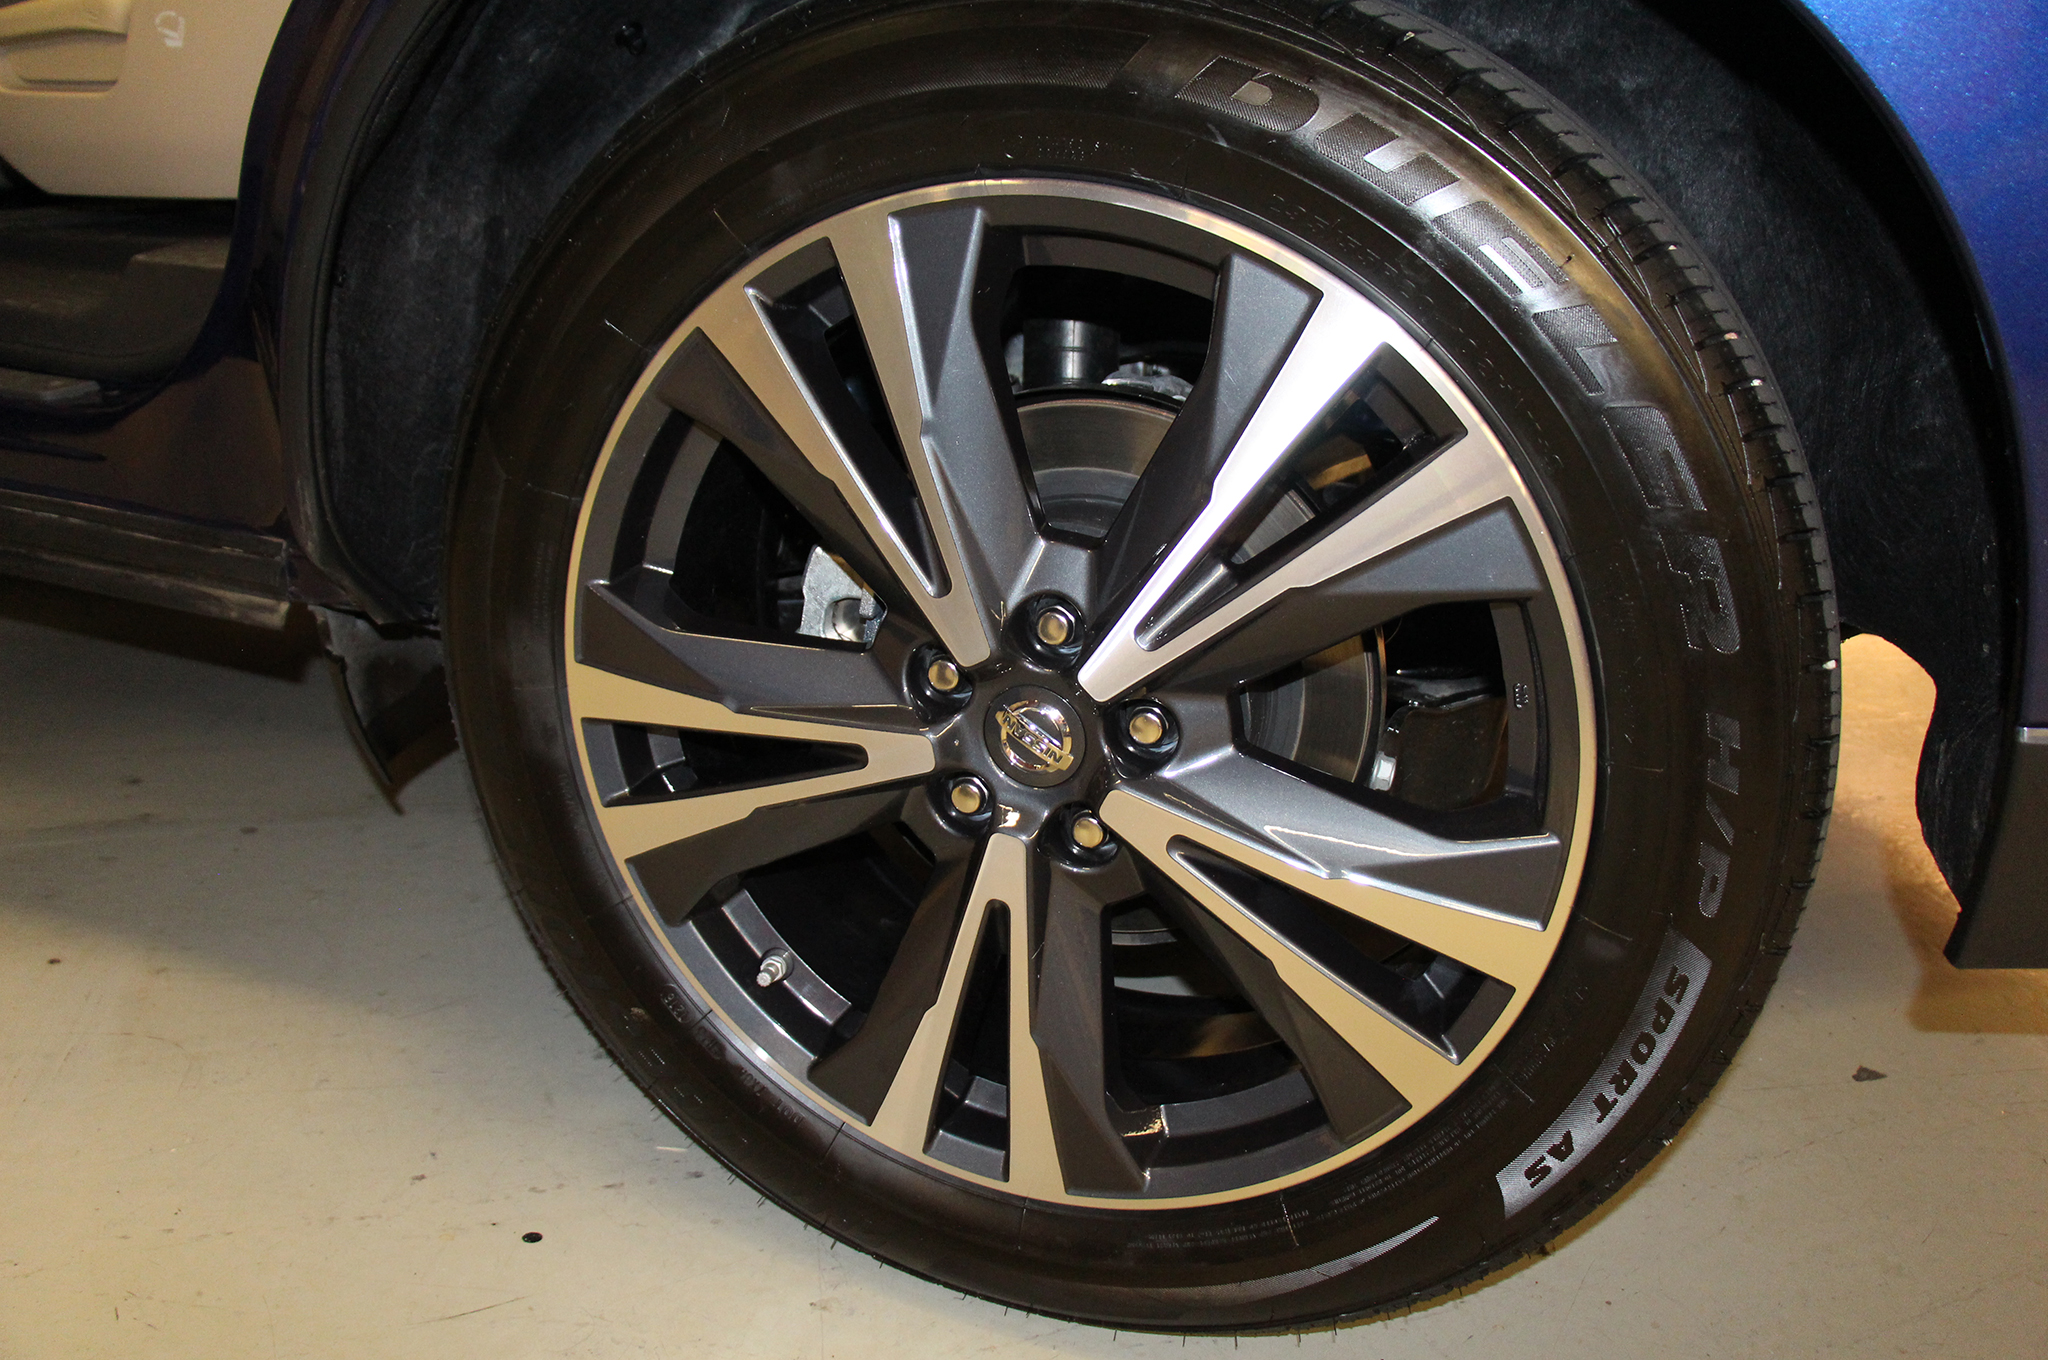 2017-Nissan-Pathfinder-wheels-1